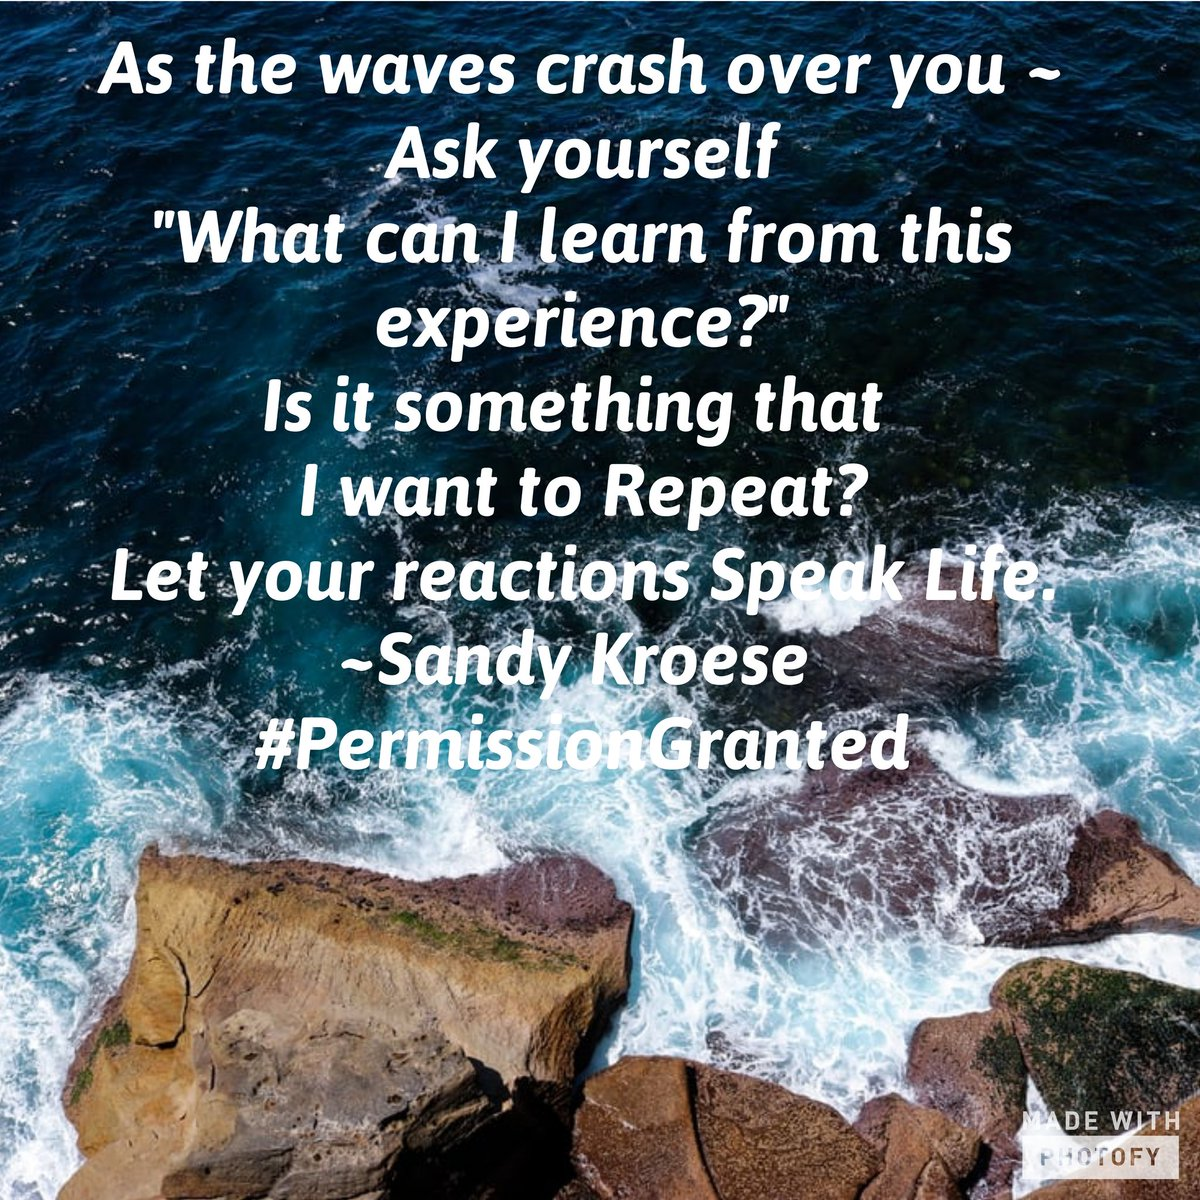 Storms in life come. We choose our reactions.  What can we see that we choose to repeat or walk away from?  #life #positivemindset #kindness #SpeakLife #ReflectionInTheMirror #PermissionGranted #thursdaymorning